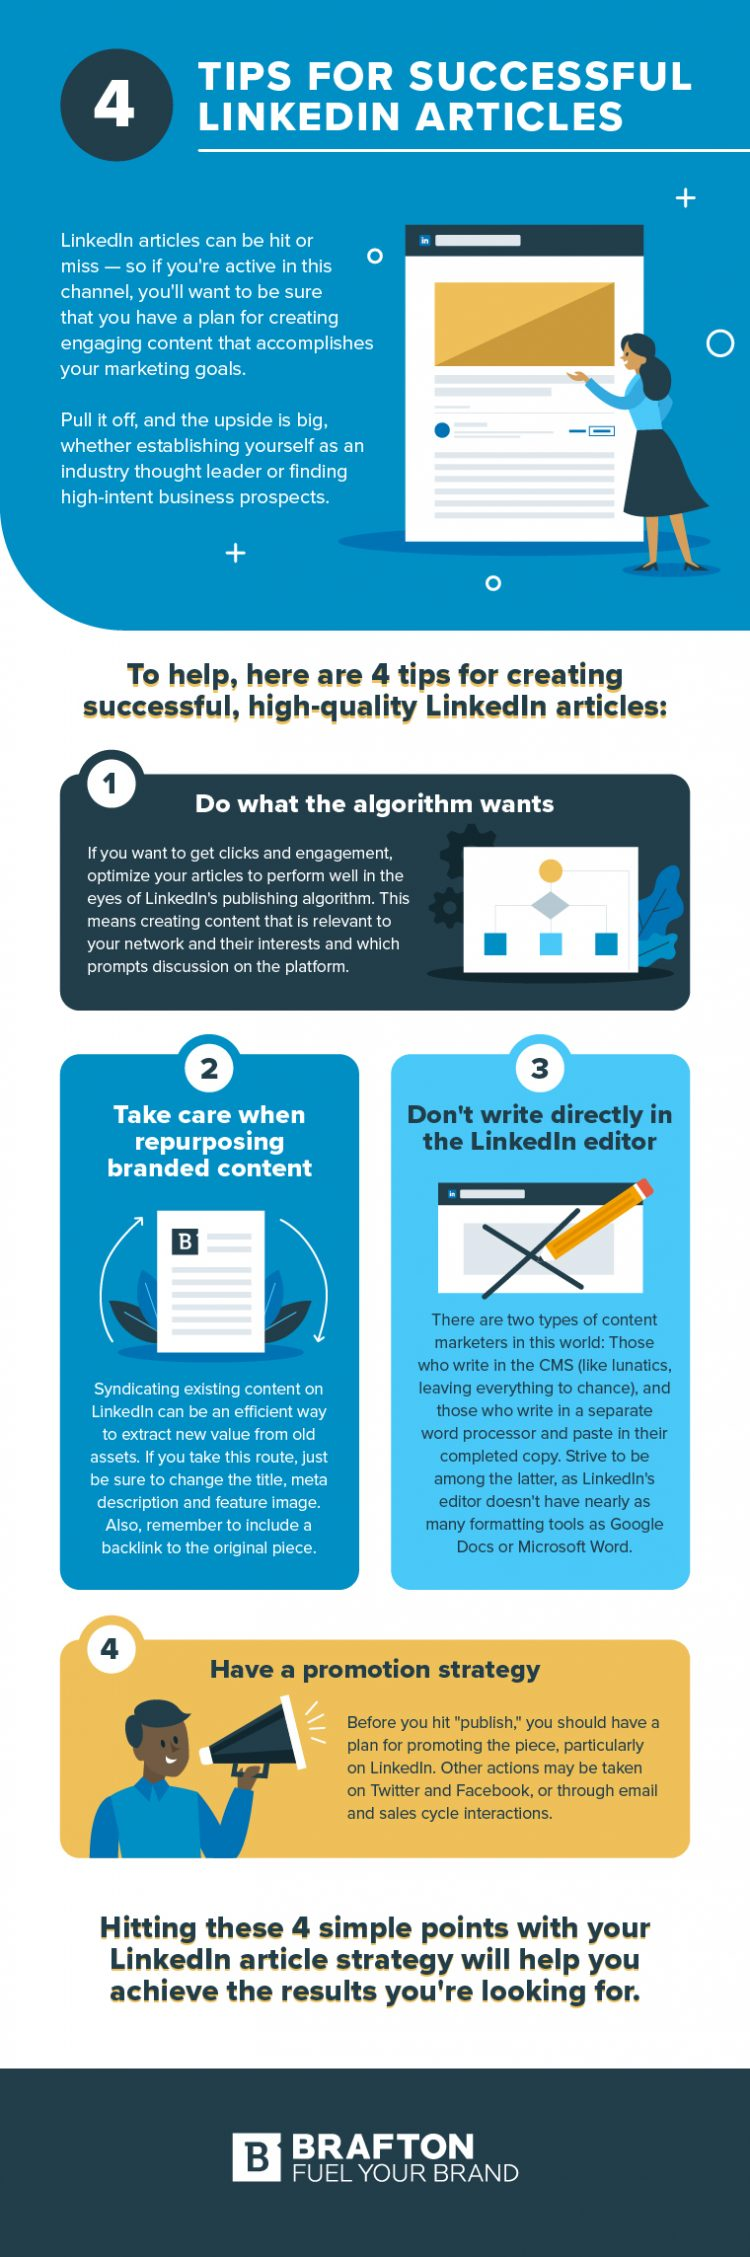 Infographic: 4 tips for successful LinkedIn articles